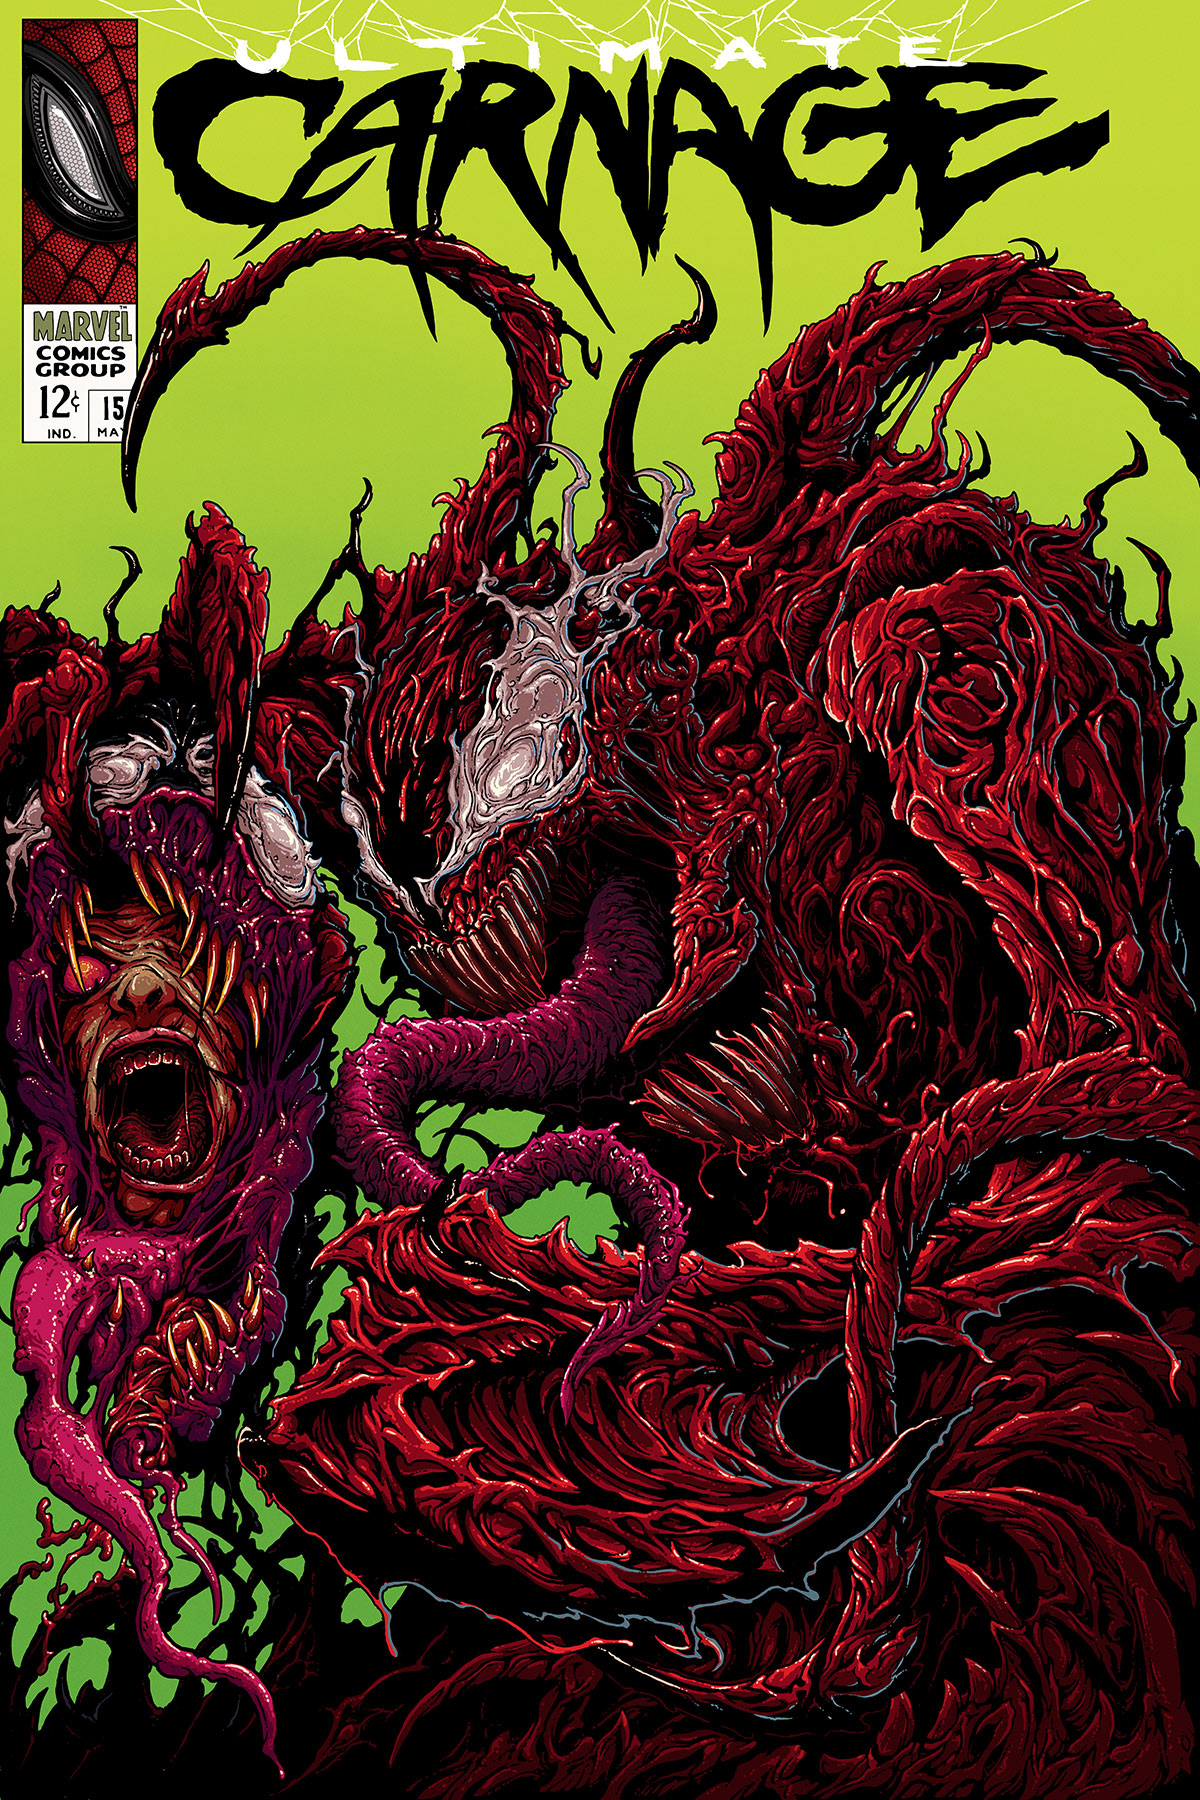 Carnage Comic Cover on Behance